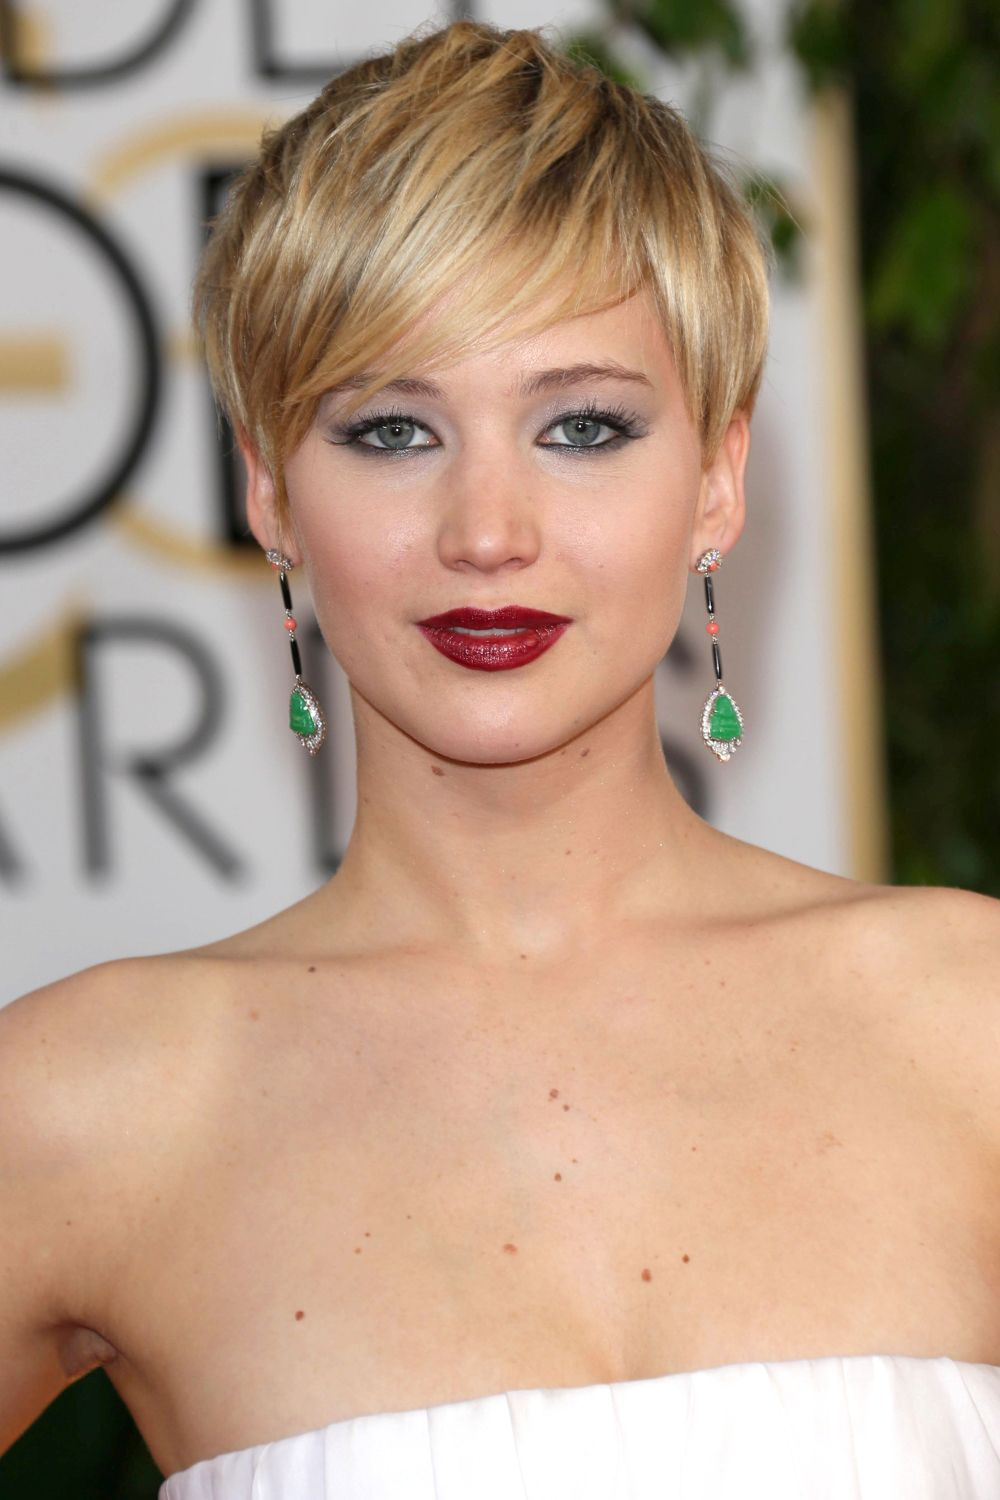 Hairstyles For Short Hair Thatll Inspire You To Chop Off Your Locks